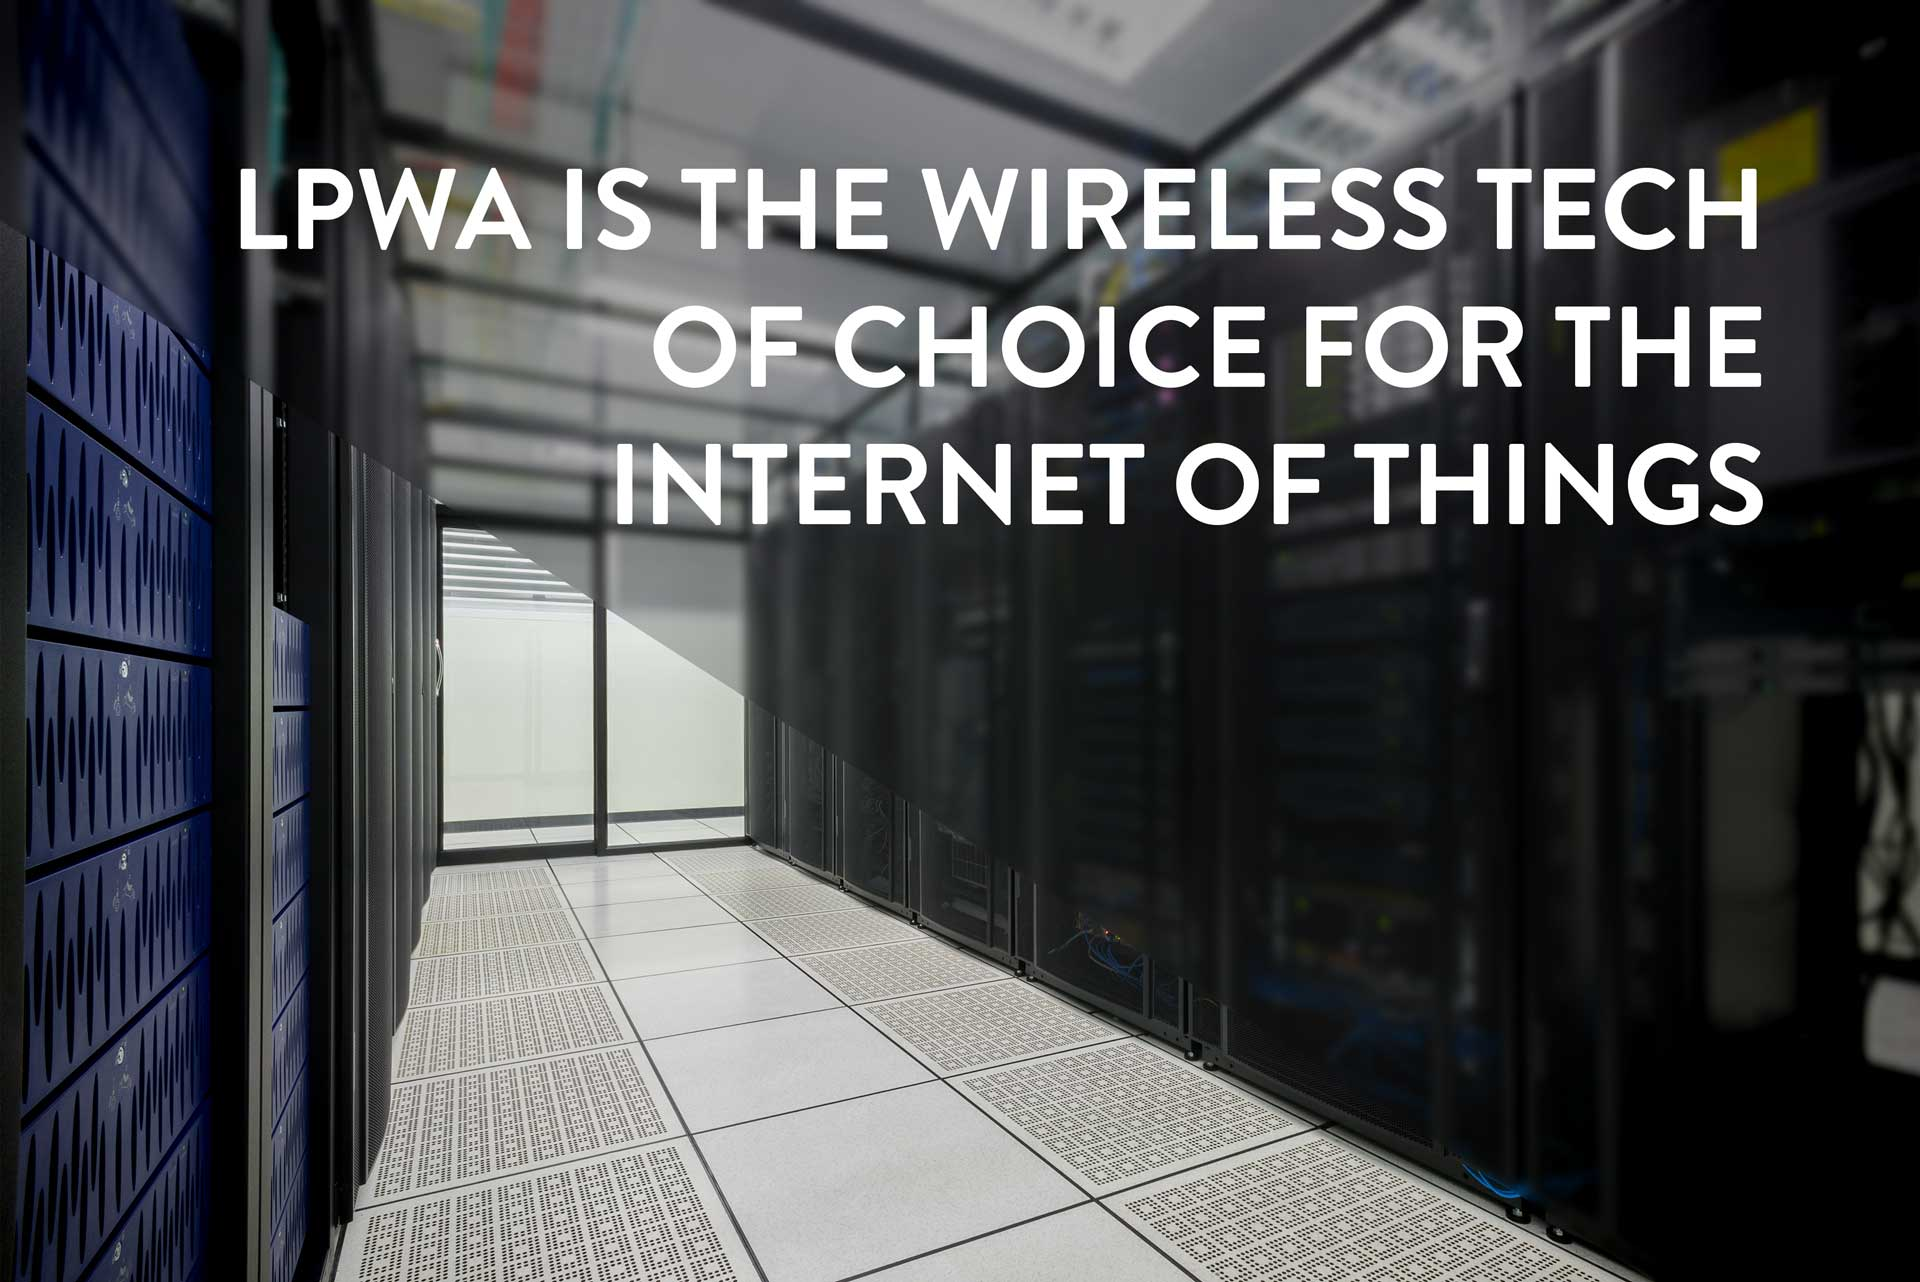 LPWA is the wireless tech of choice for the internet of things